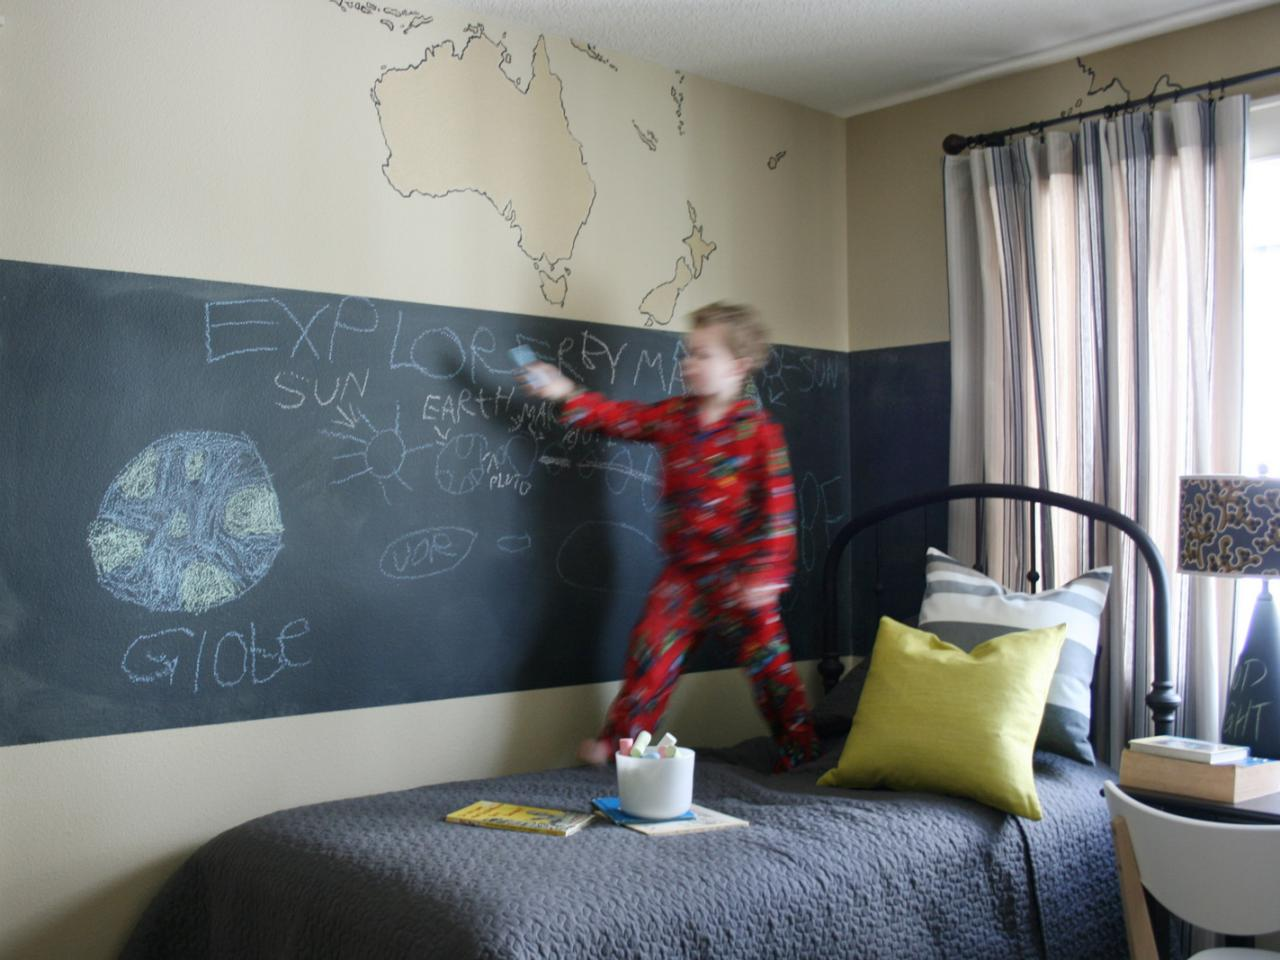 Bedroom wall decoration for kids - Related To Bedrooms Design 101 Kid S Room With Chalkboard Walls